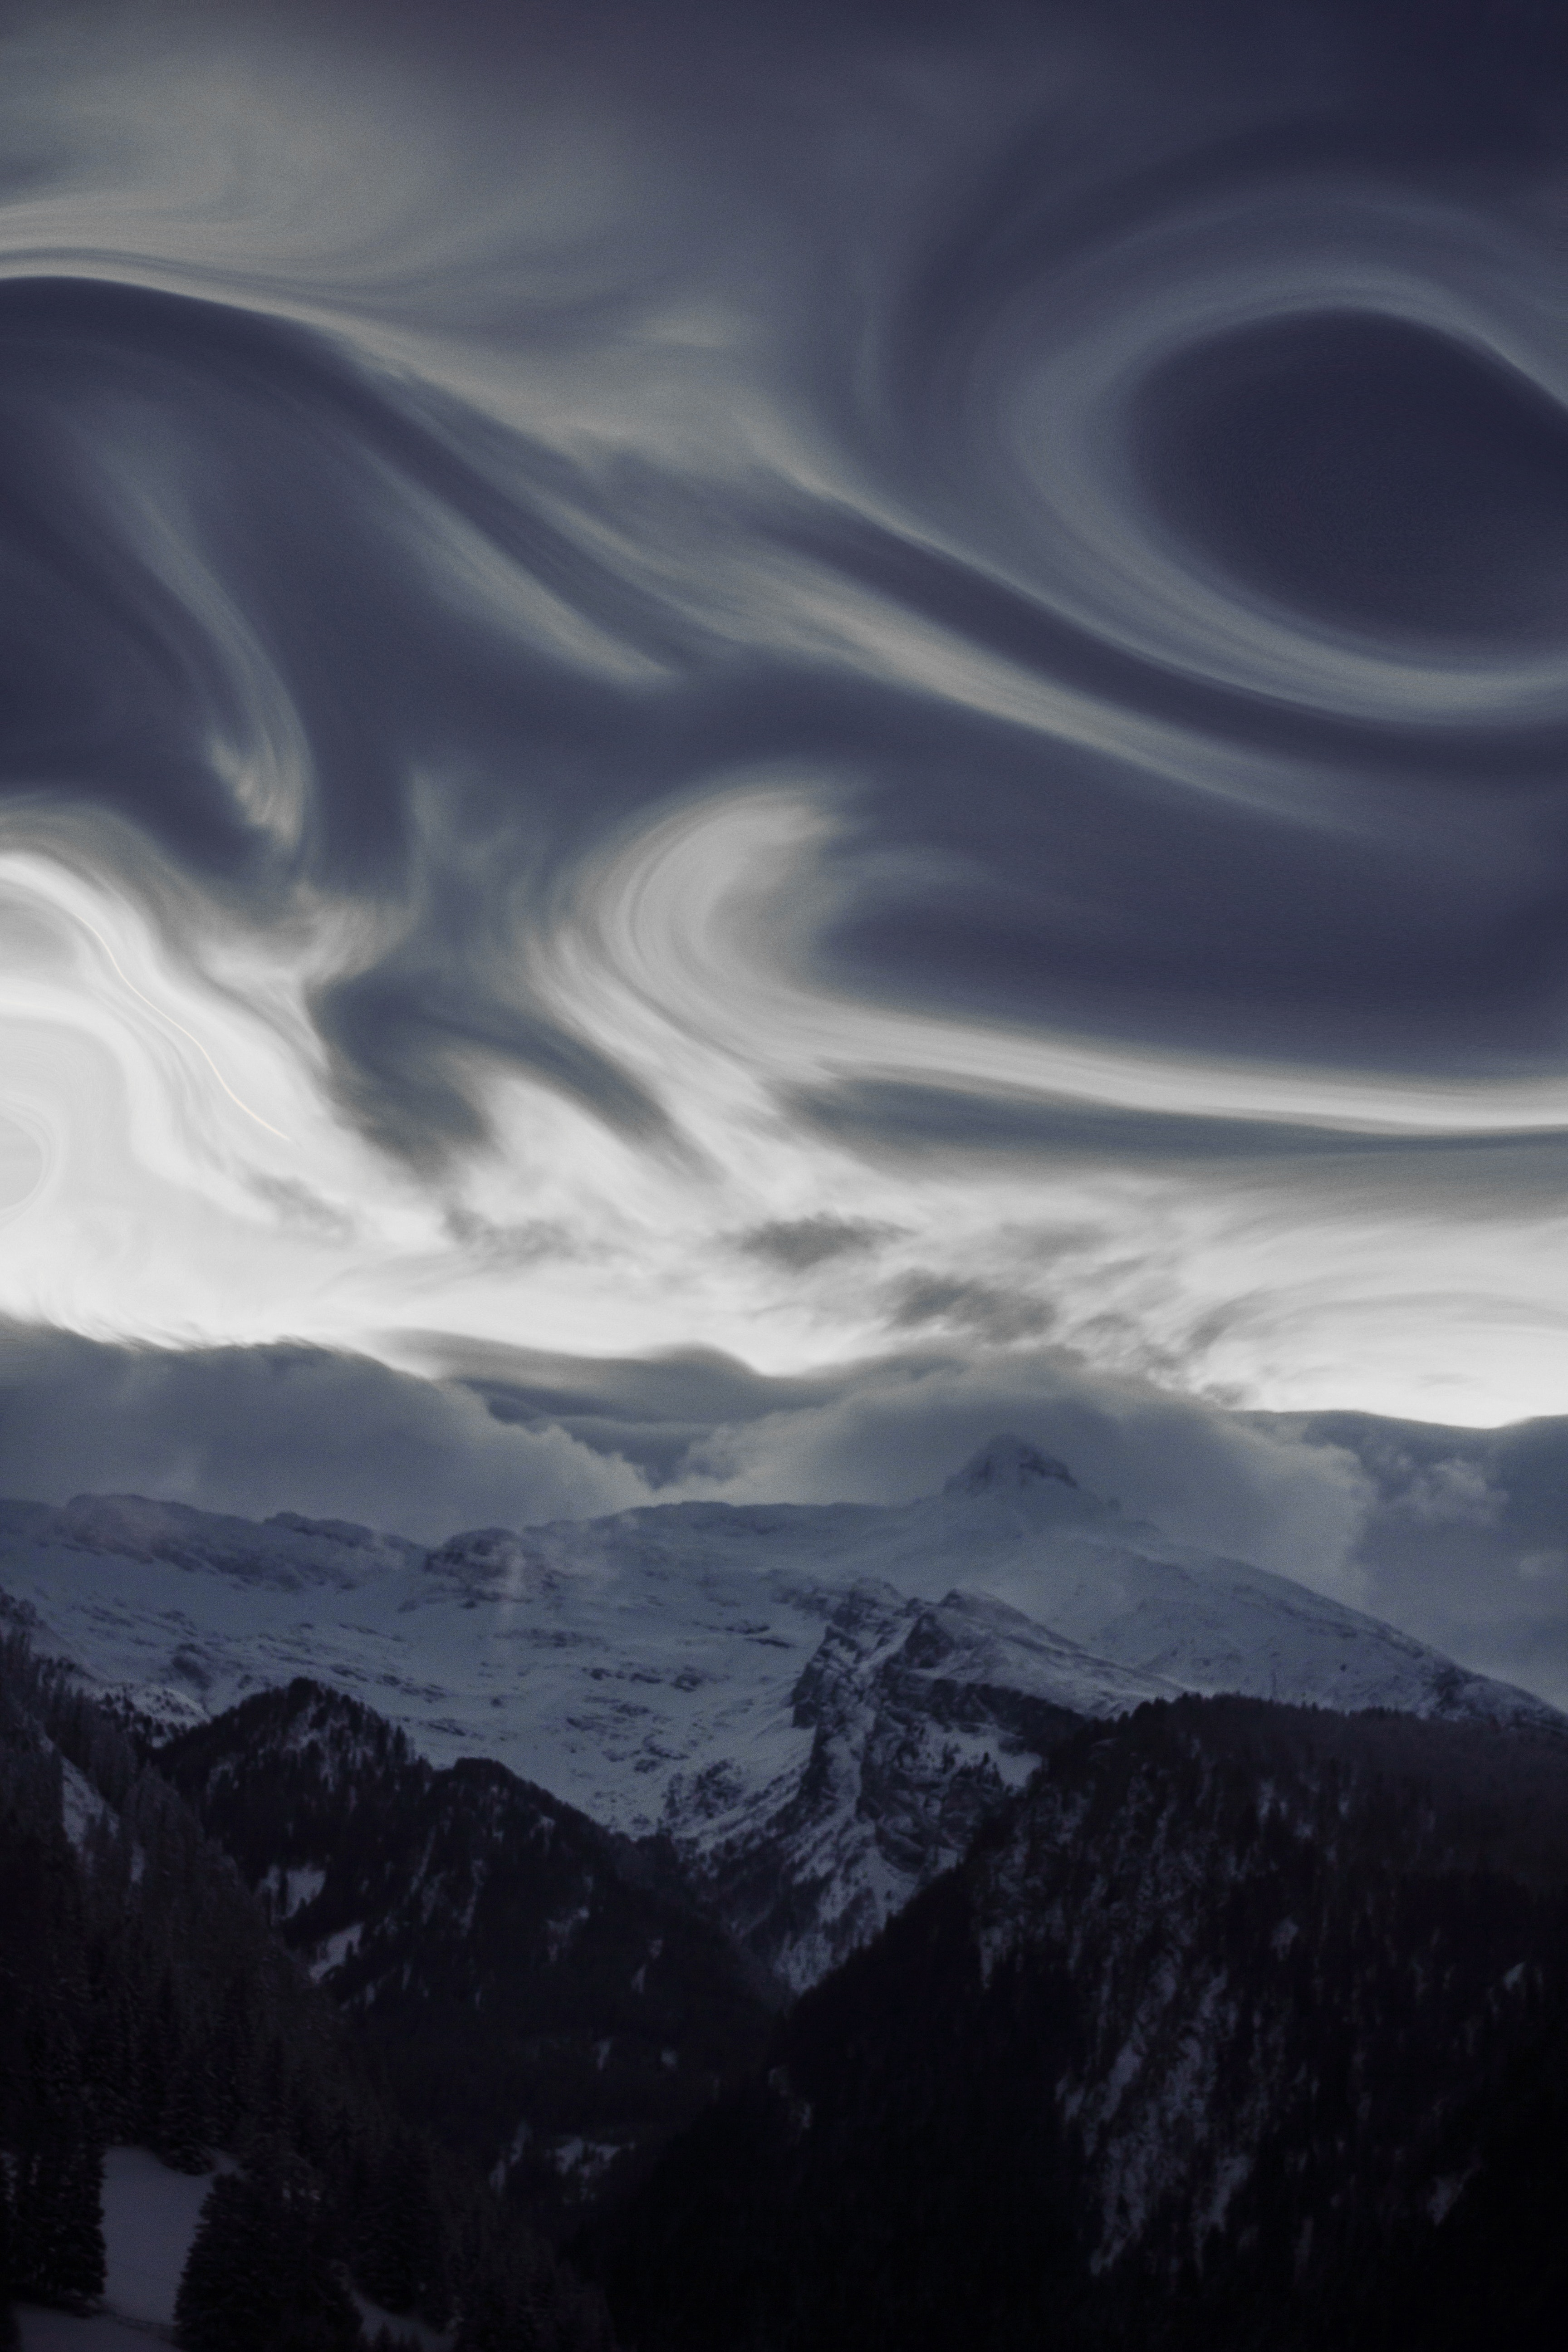 Time-lapse photography of clouds